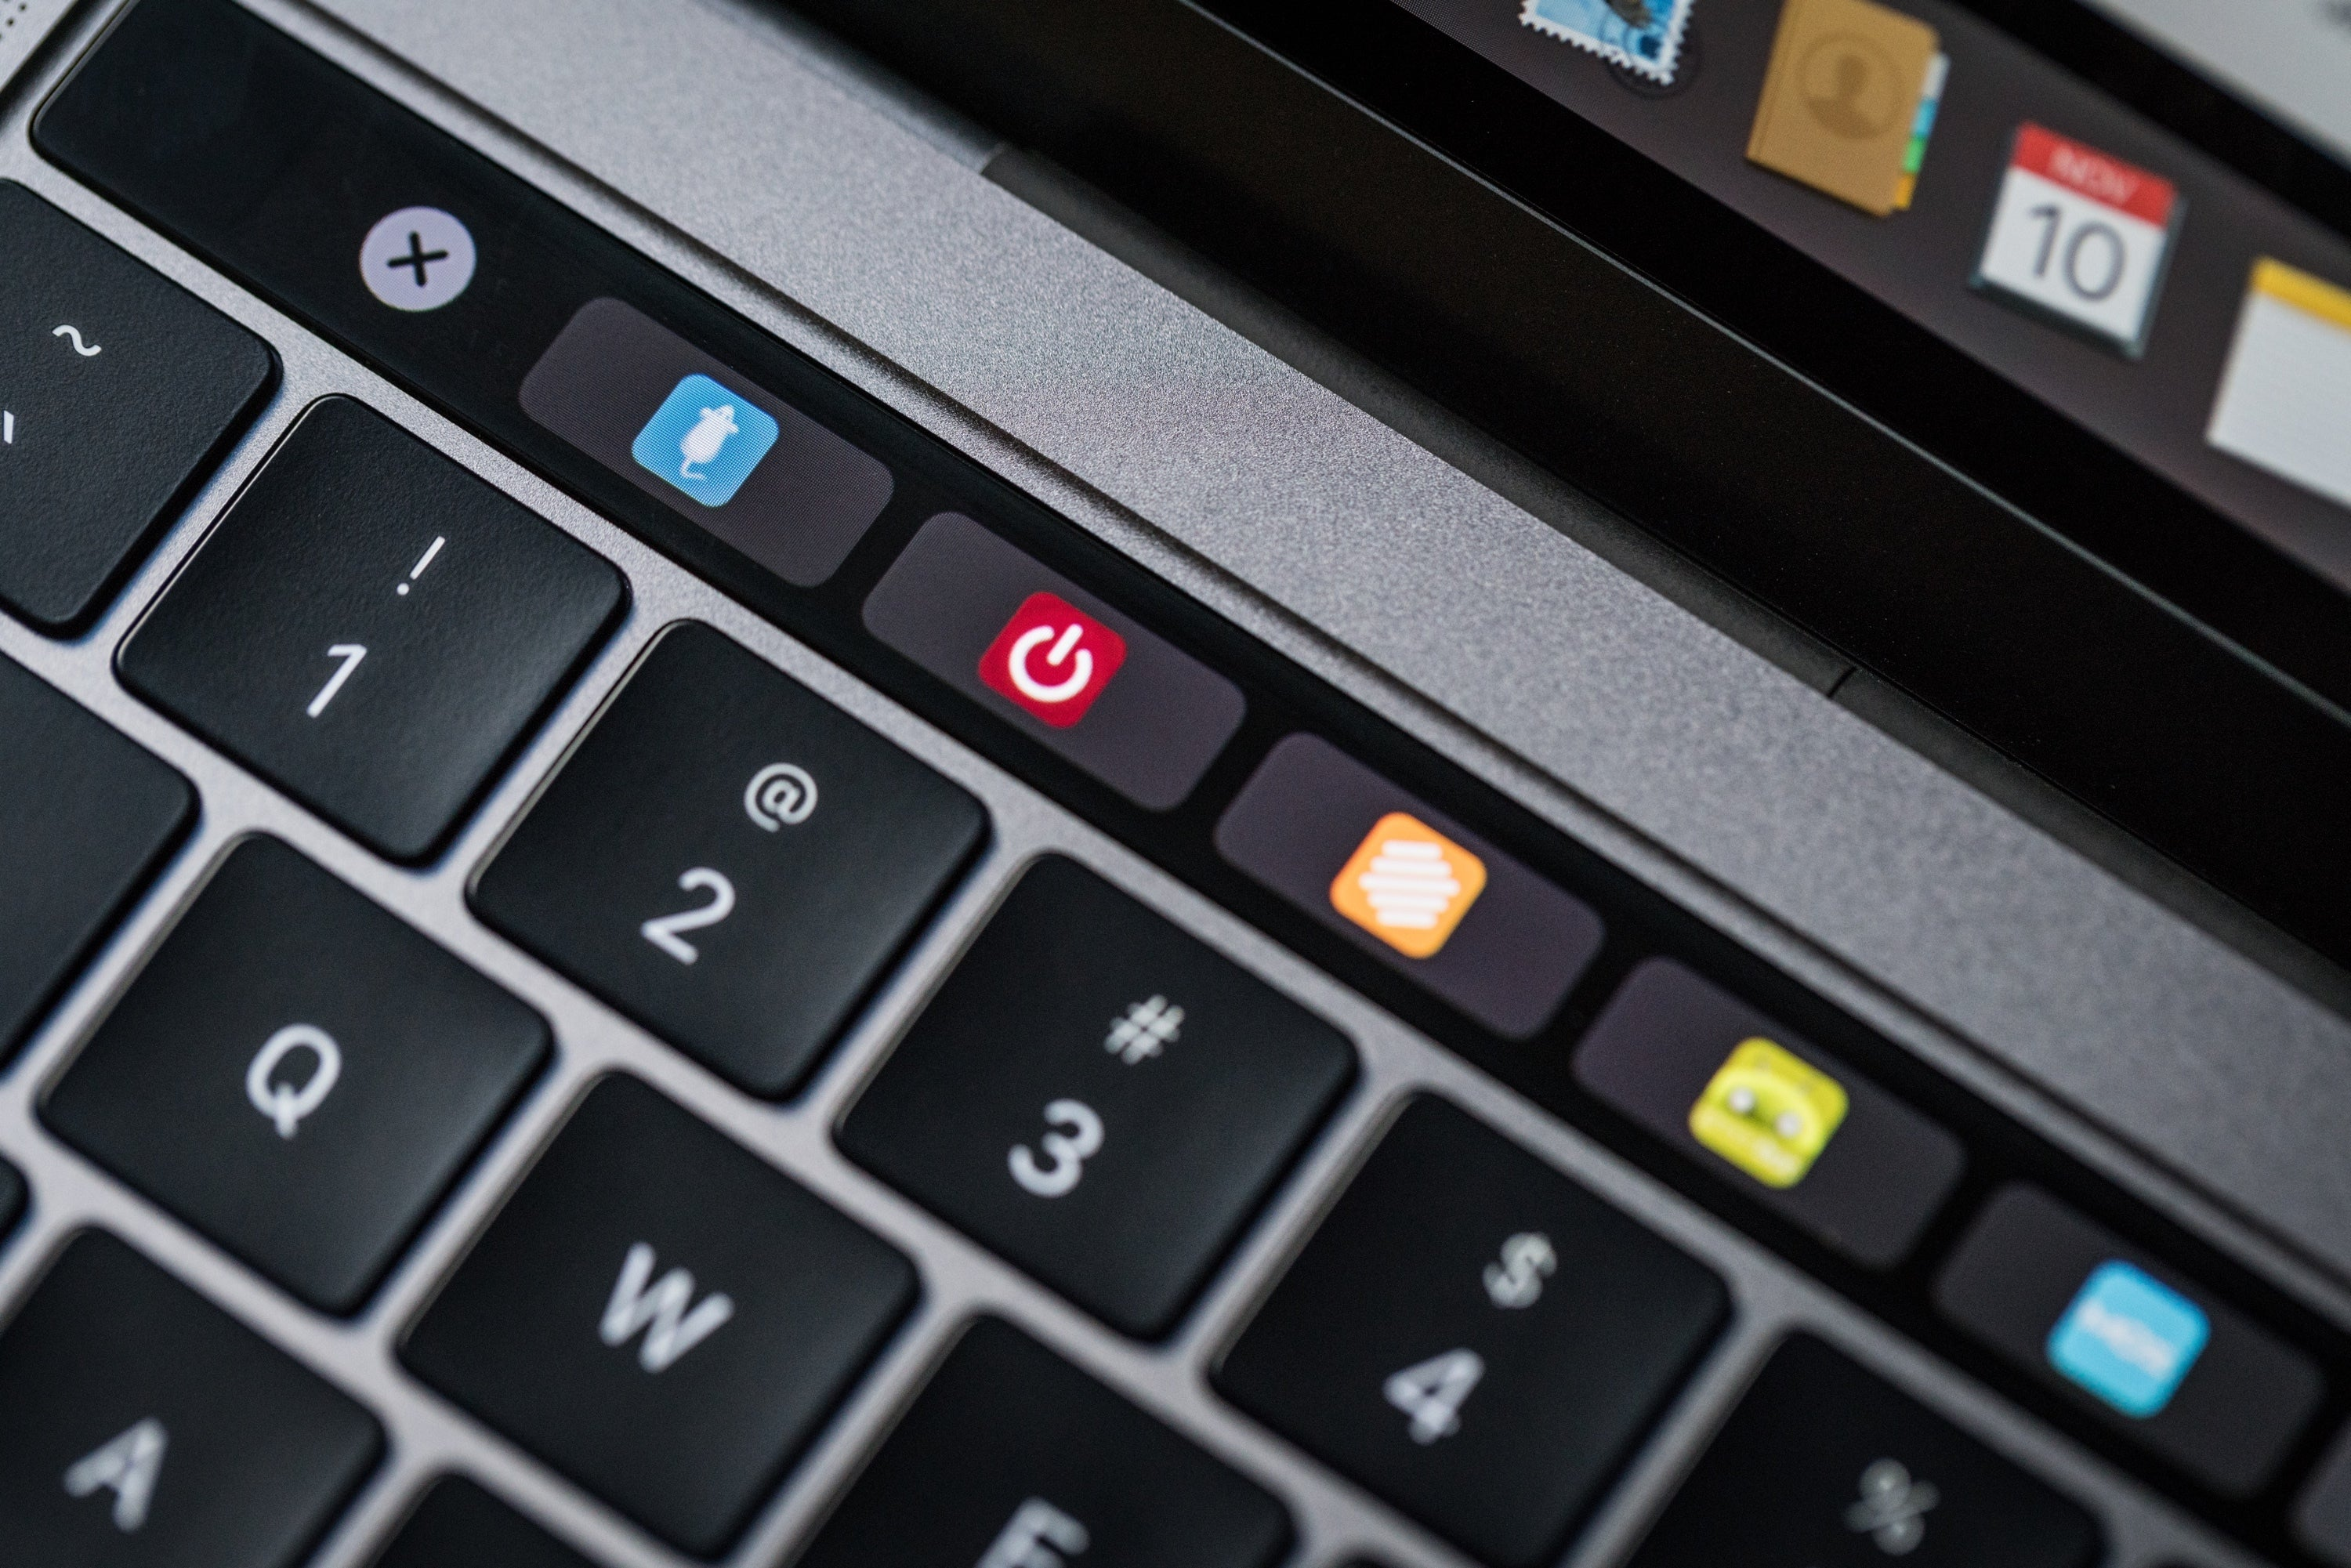 MacBook Pro with Touch Bar review: The best bits of iOS in a